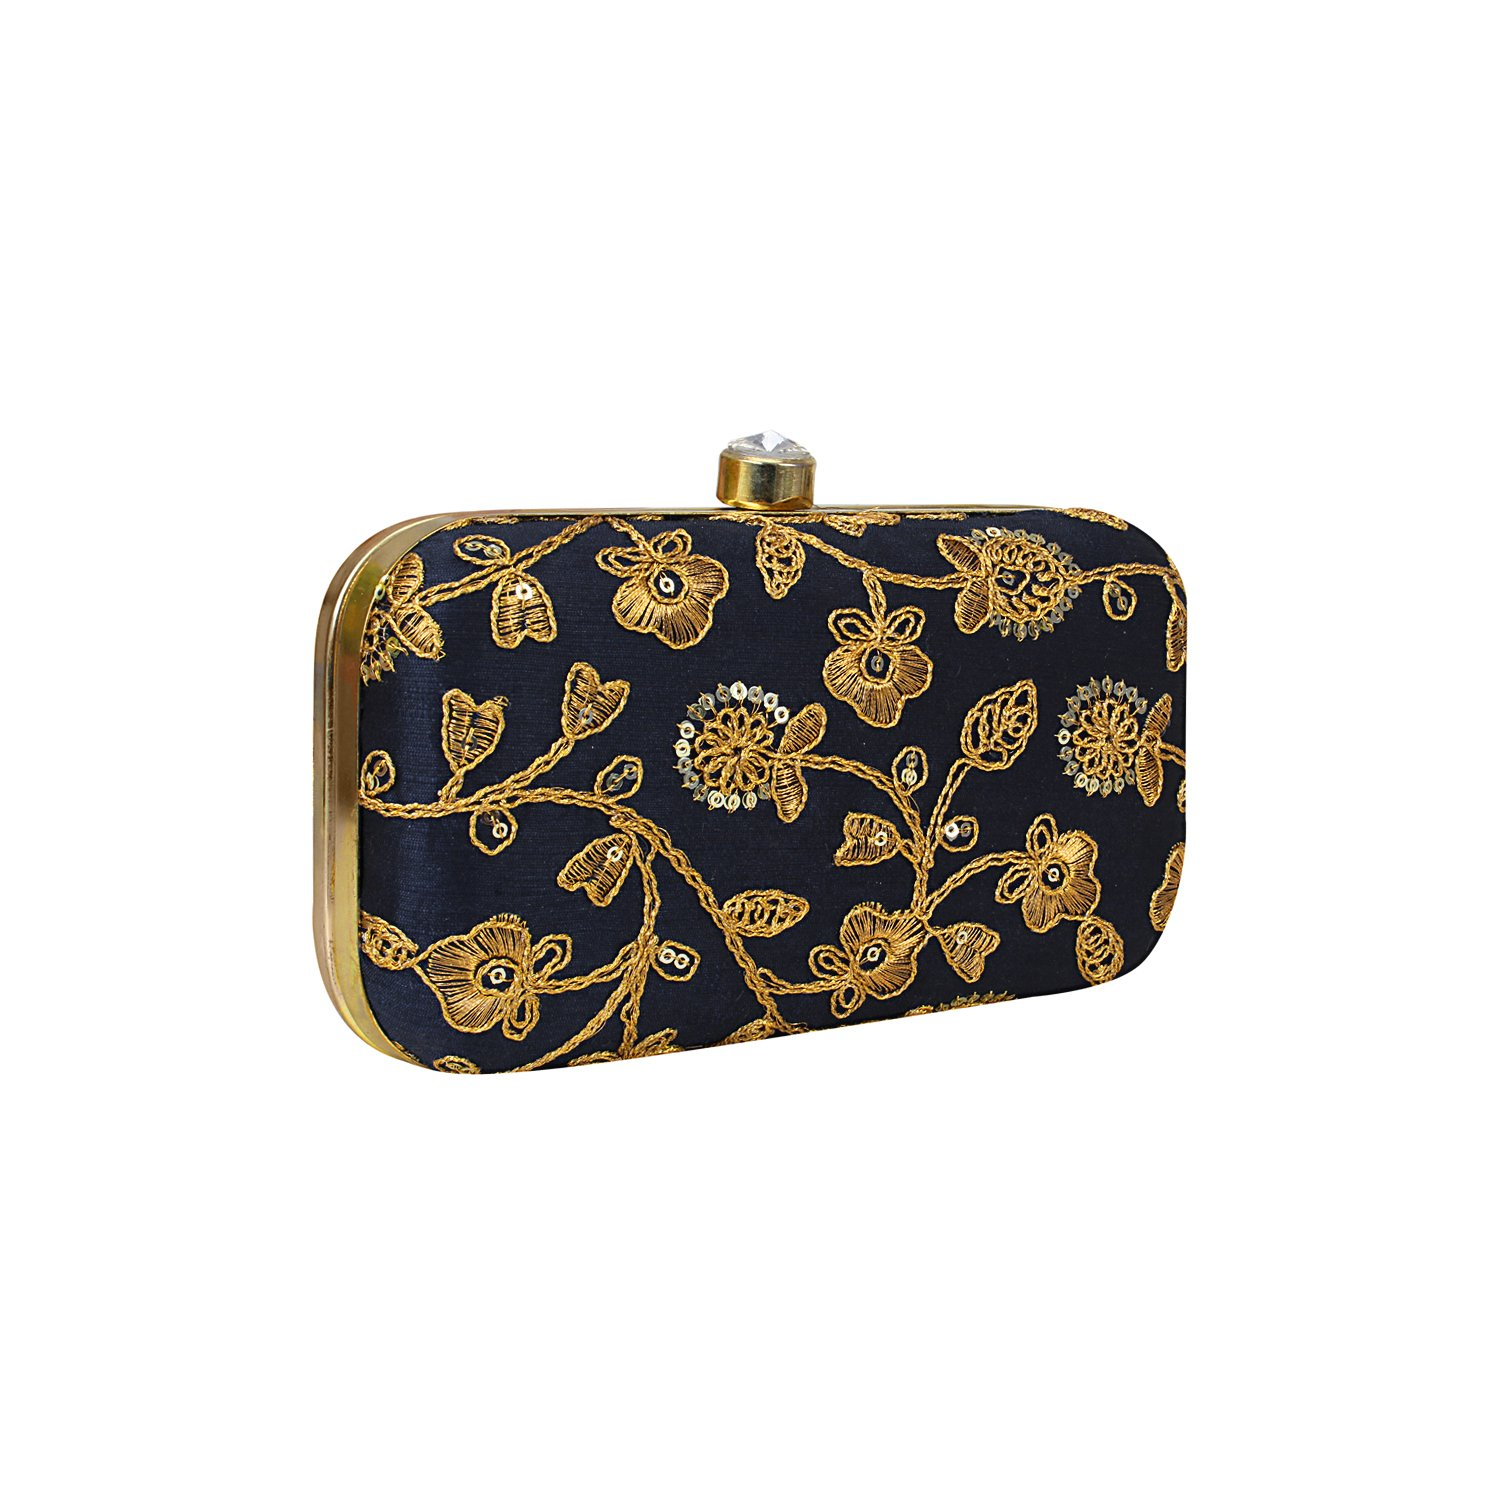 Hand Crafted Designer Box Clutch with Zari Embroidery Work on Silk Texture Specially Designed for Women & Girls in Parties/Wedding/festivals/Casual and special evenings (Navy Blue)